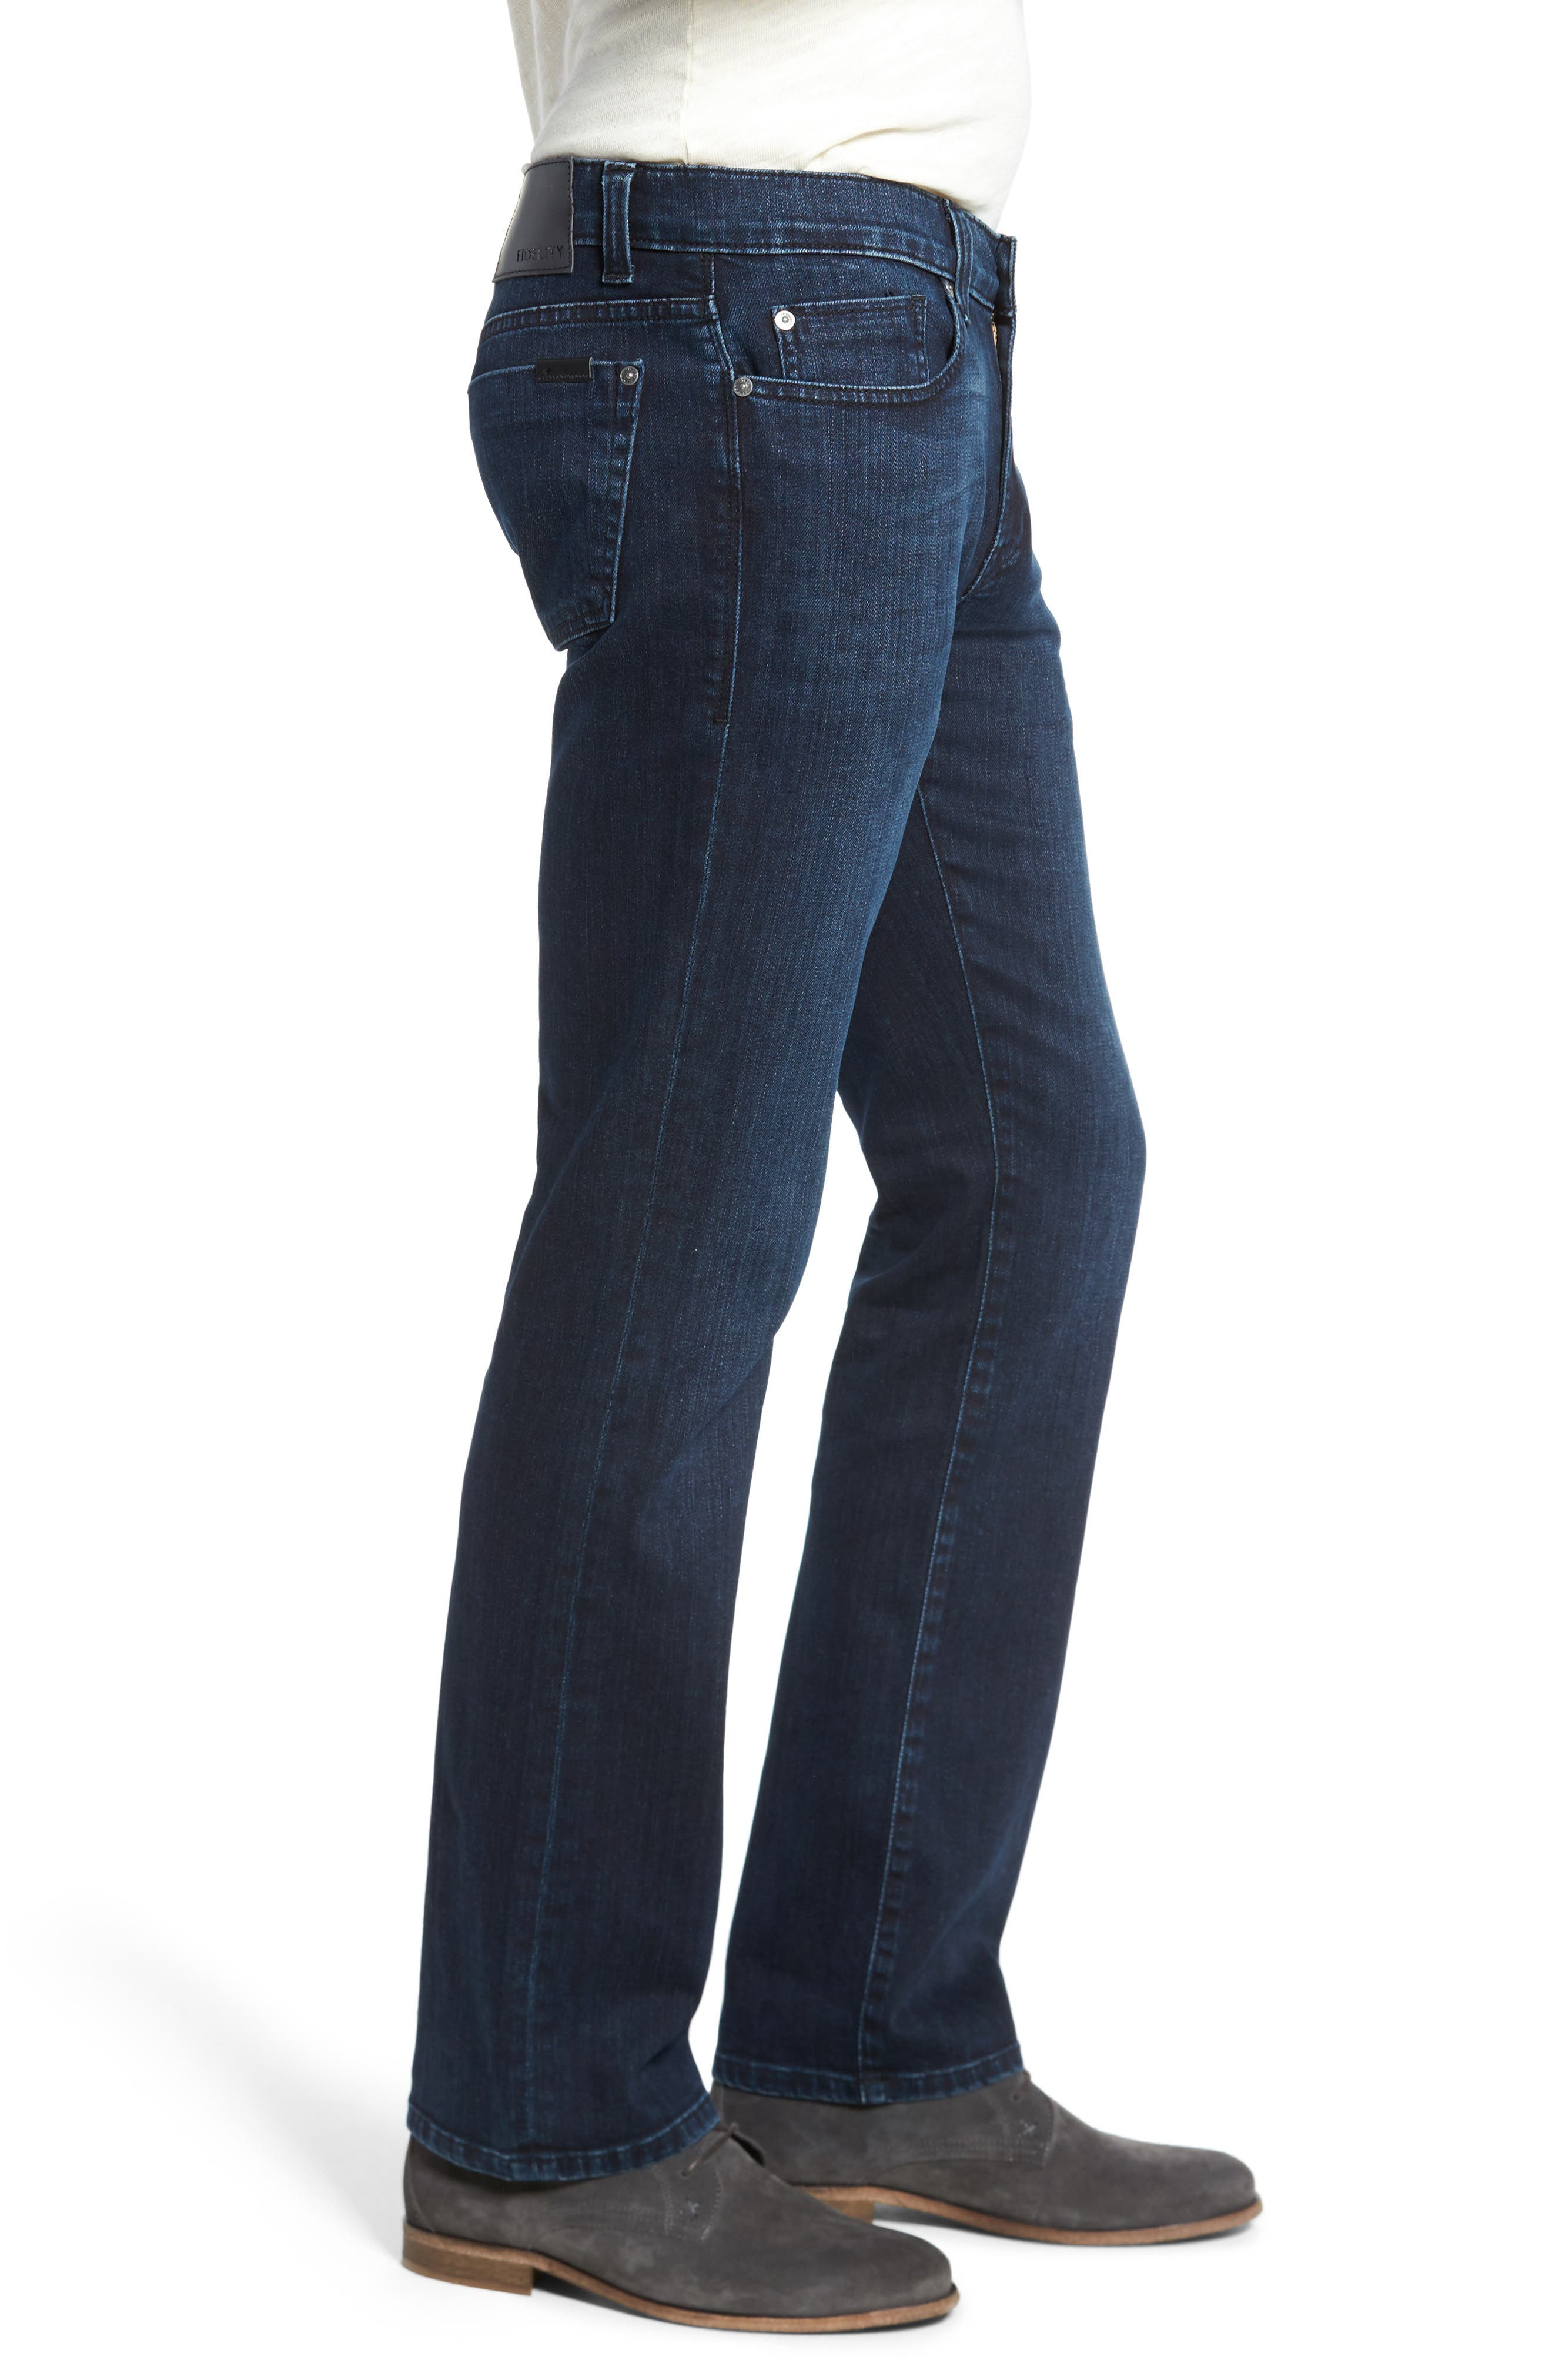 5011 Relaxed Fit Jeans,                             Alternate thumbnail 3, color,                             Black On Blue